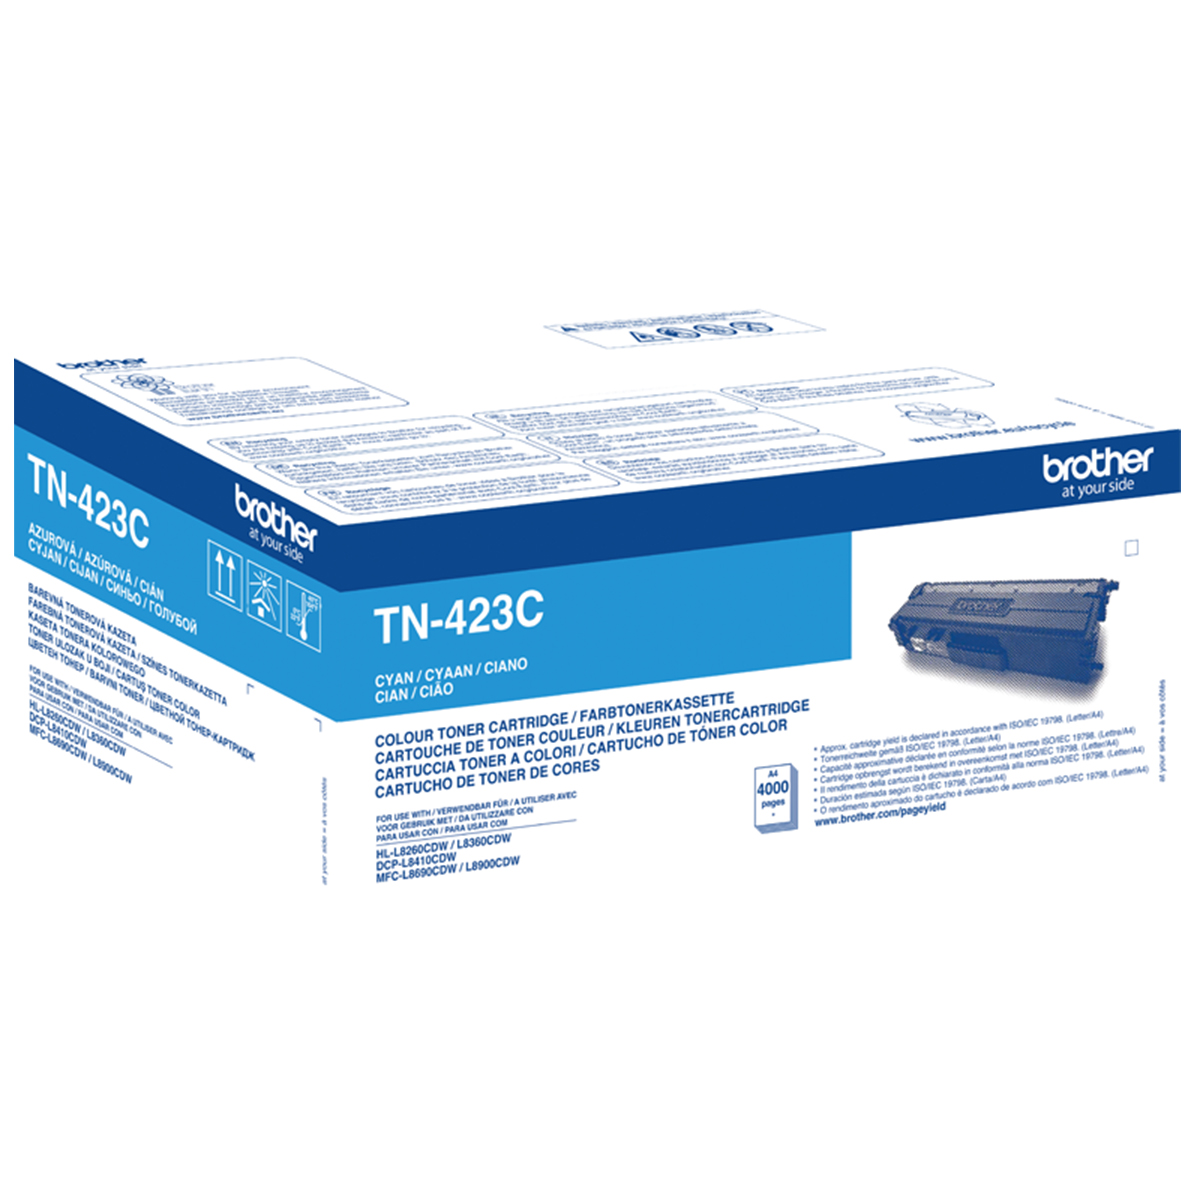 Brother TN-423C High Yield Cyan Toner